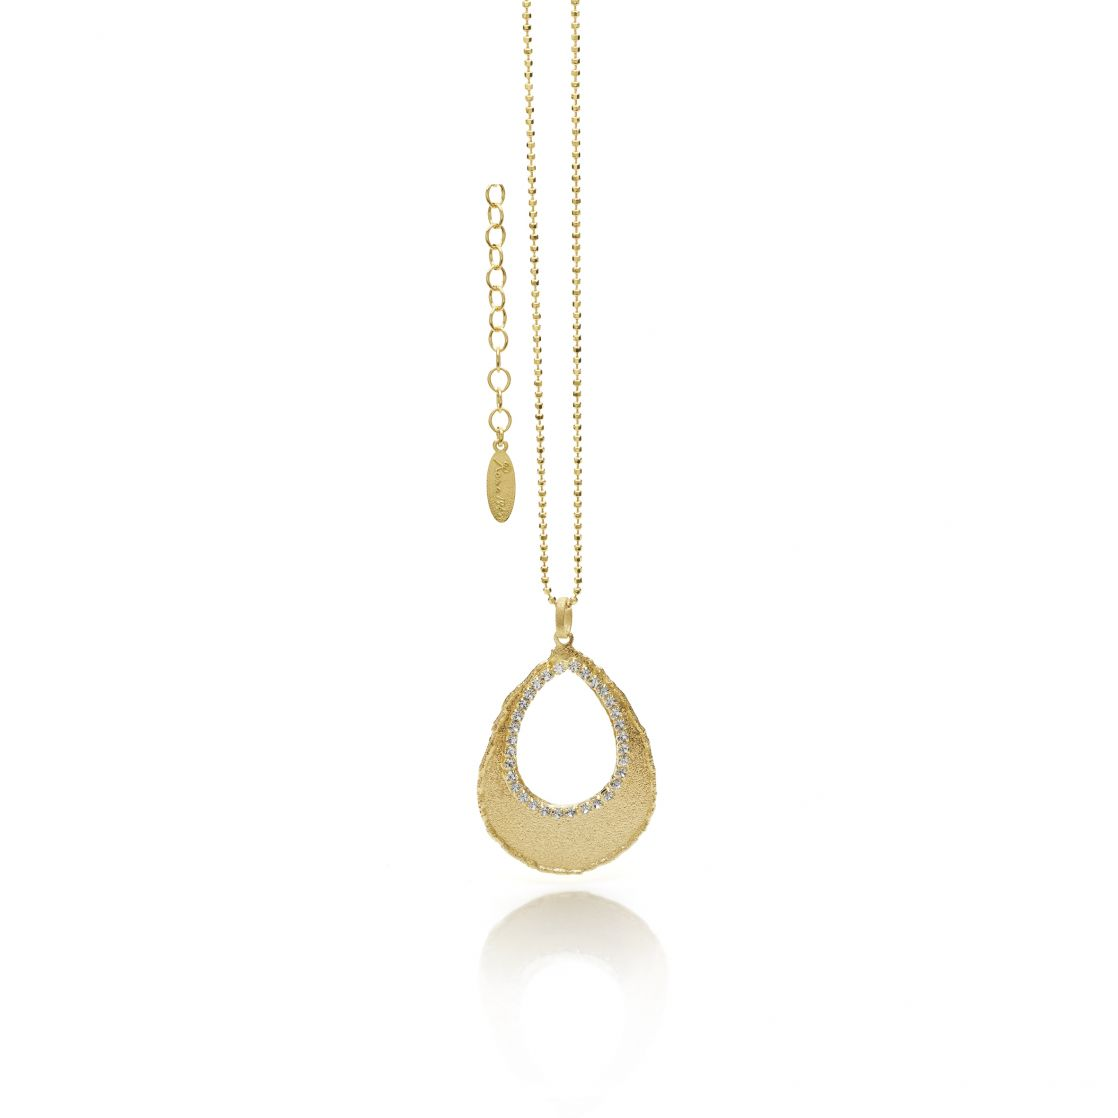 DROP SHAPED NECKLACE